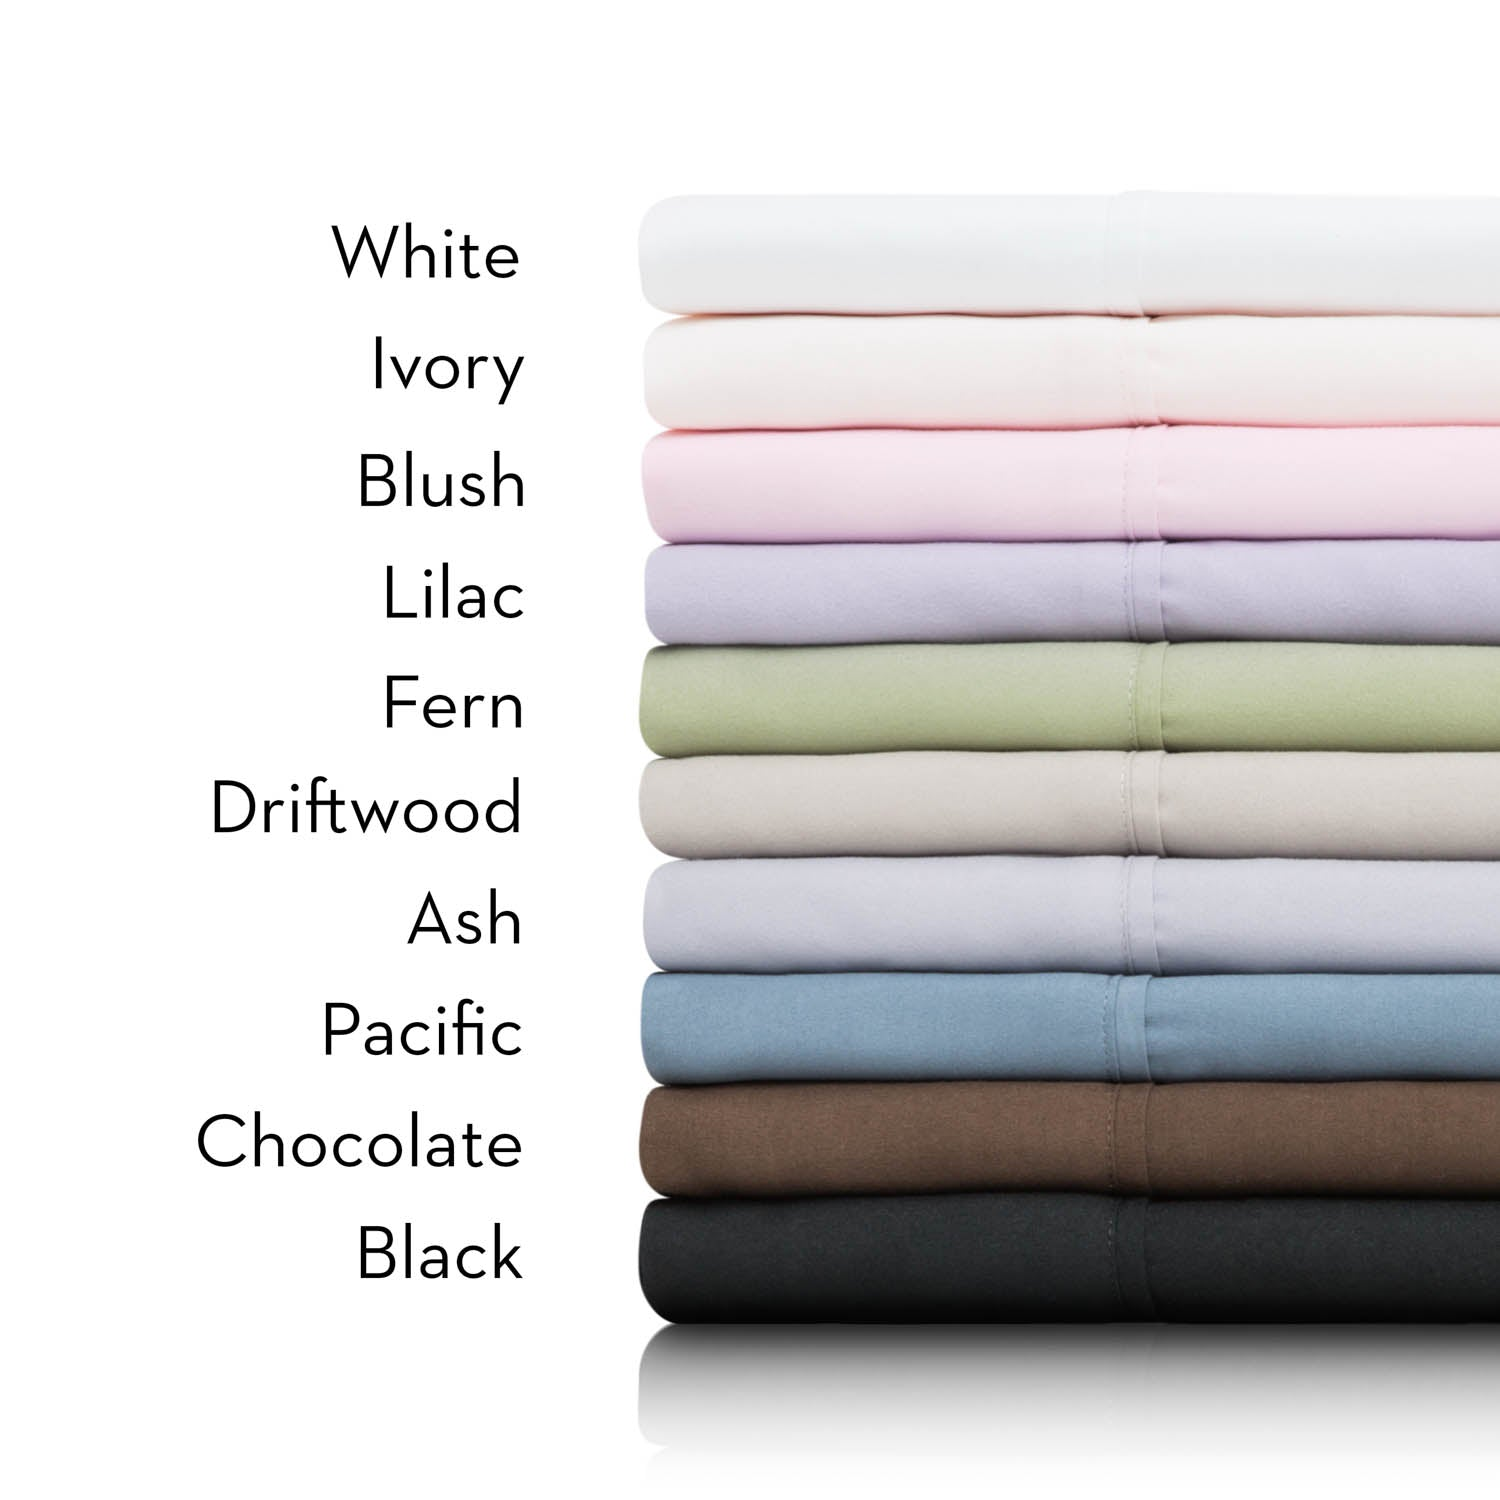 Malouf Woven Brushed Microfiber Bed Sheet Set